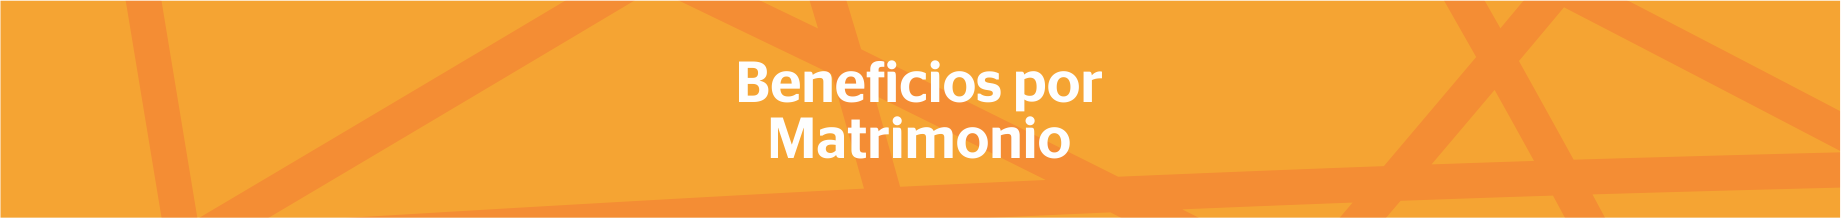 Beneficios por matrimonio